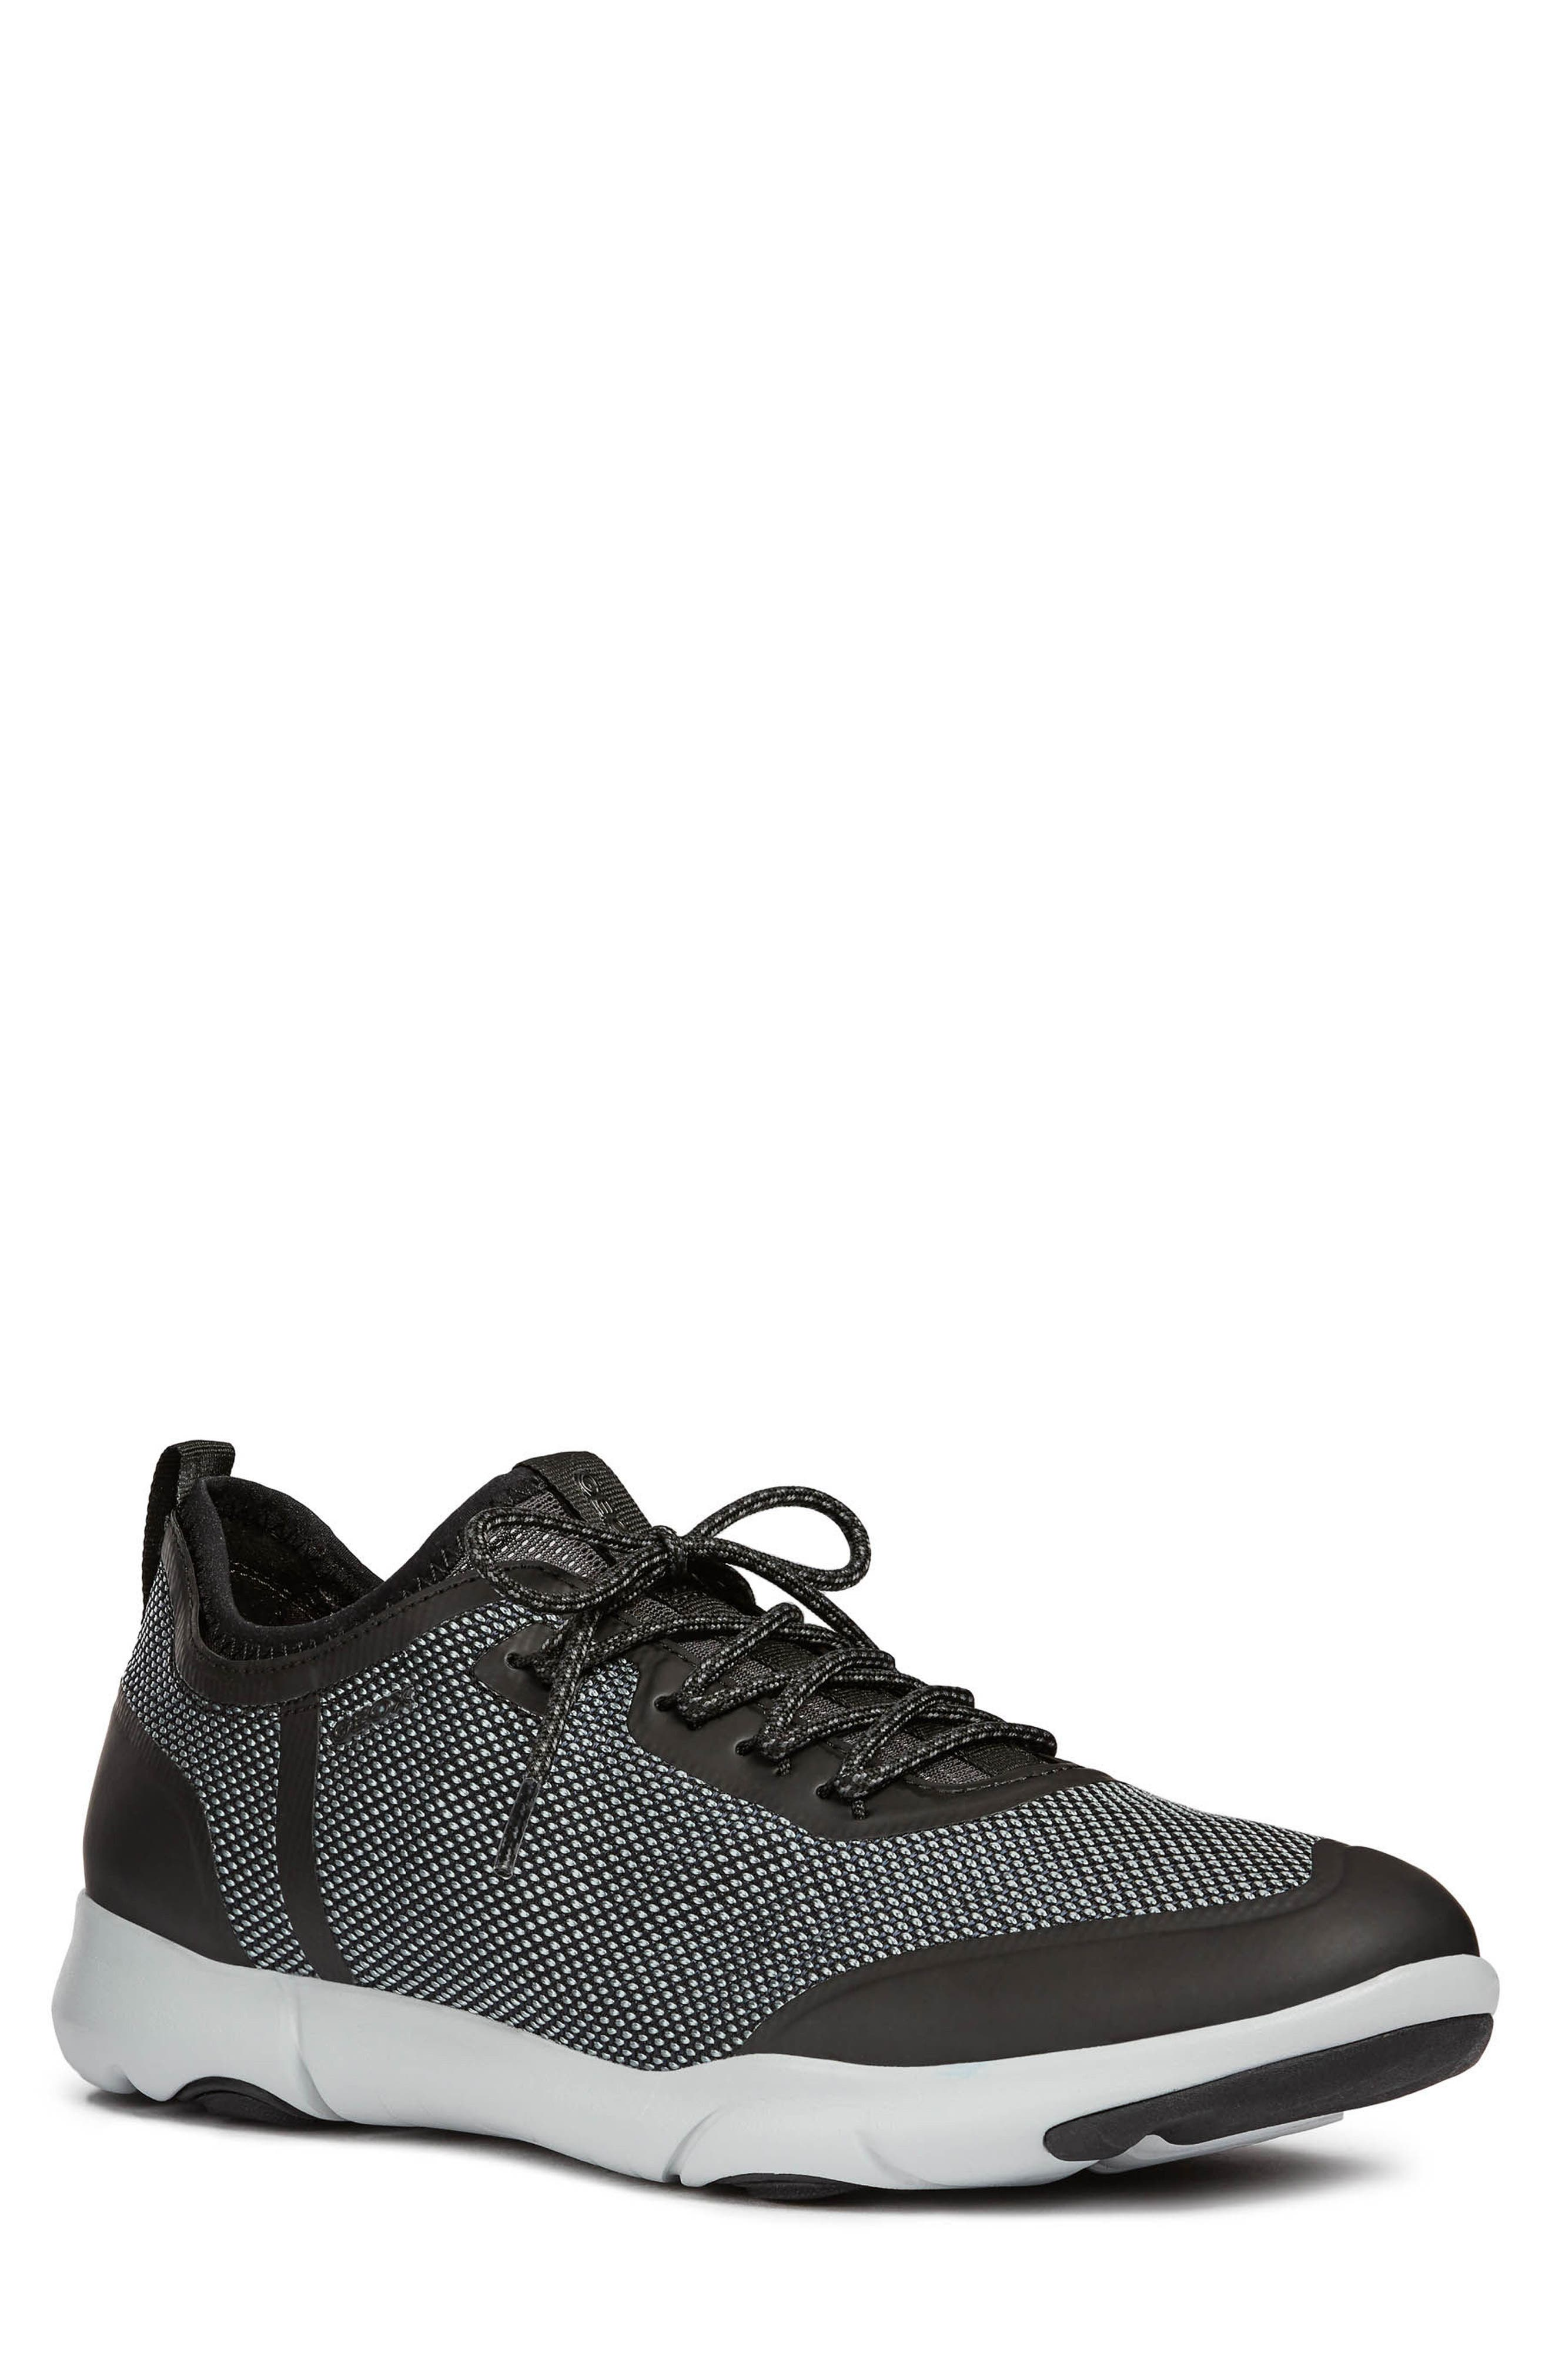 Nebula X 3 Low Top Sneaker,                         Main,                         color, BLACK LEATHER